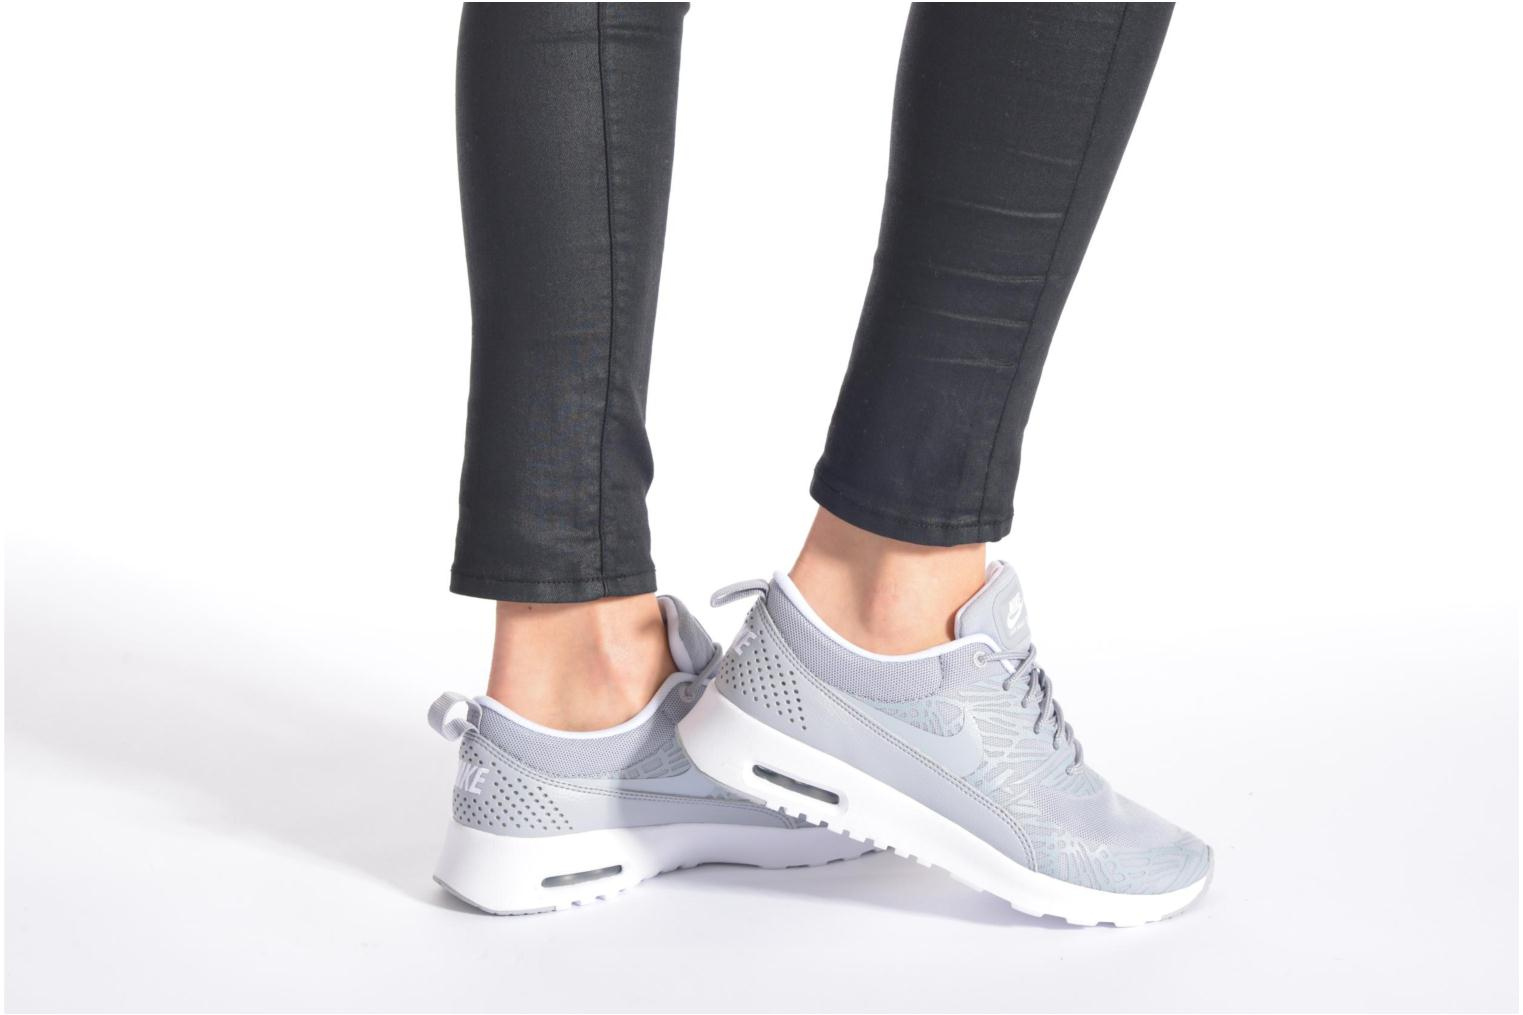 Sneakers Nike Wmns Nike Air Max Thea Print Multi se forneden